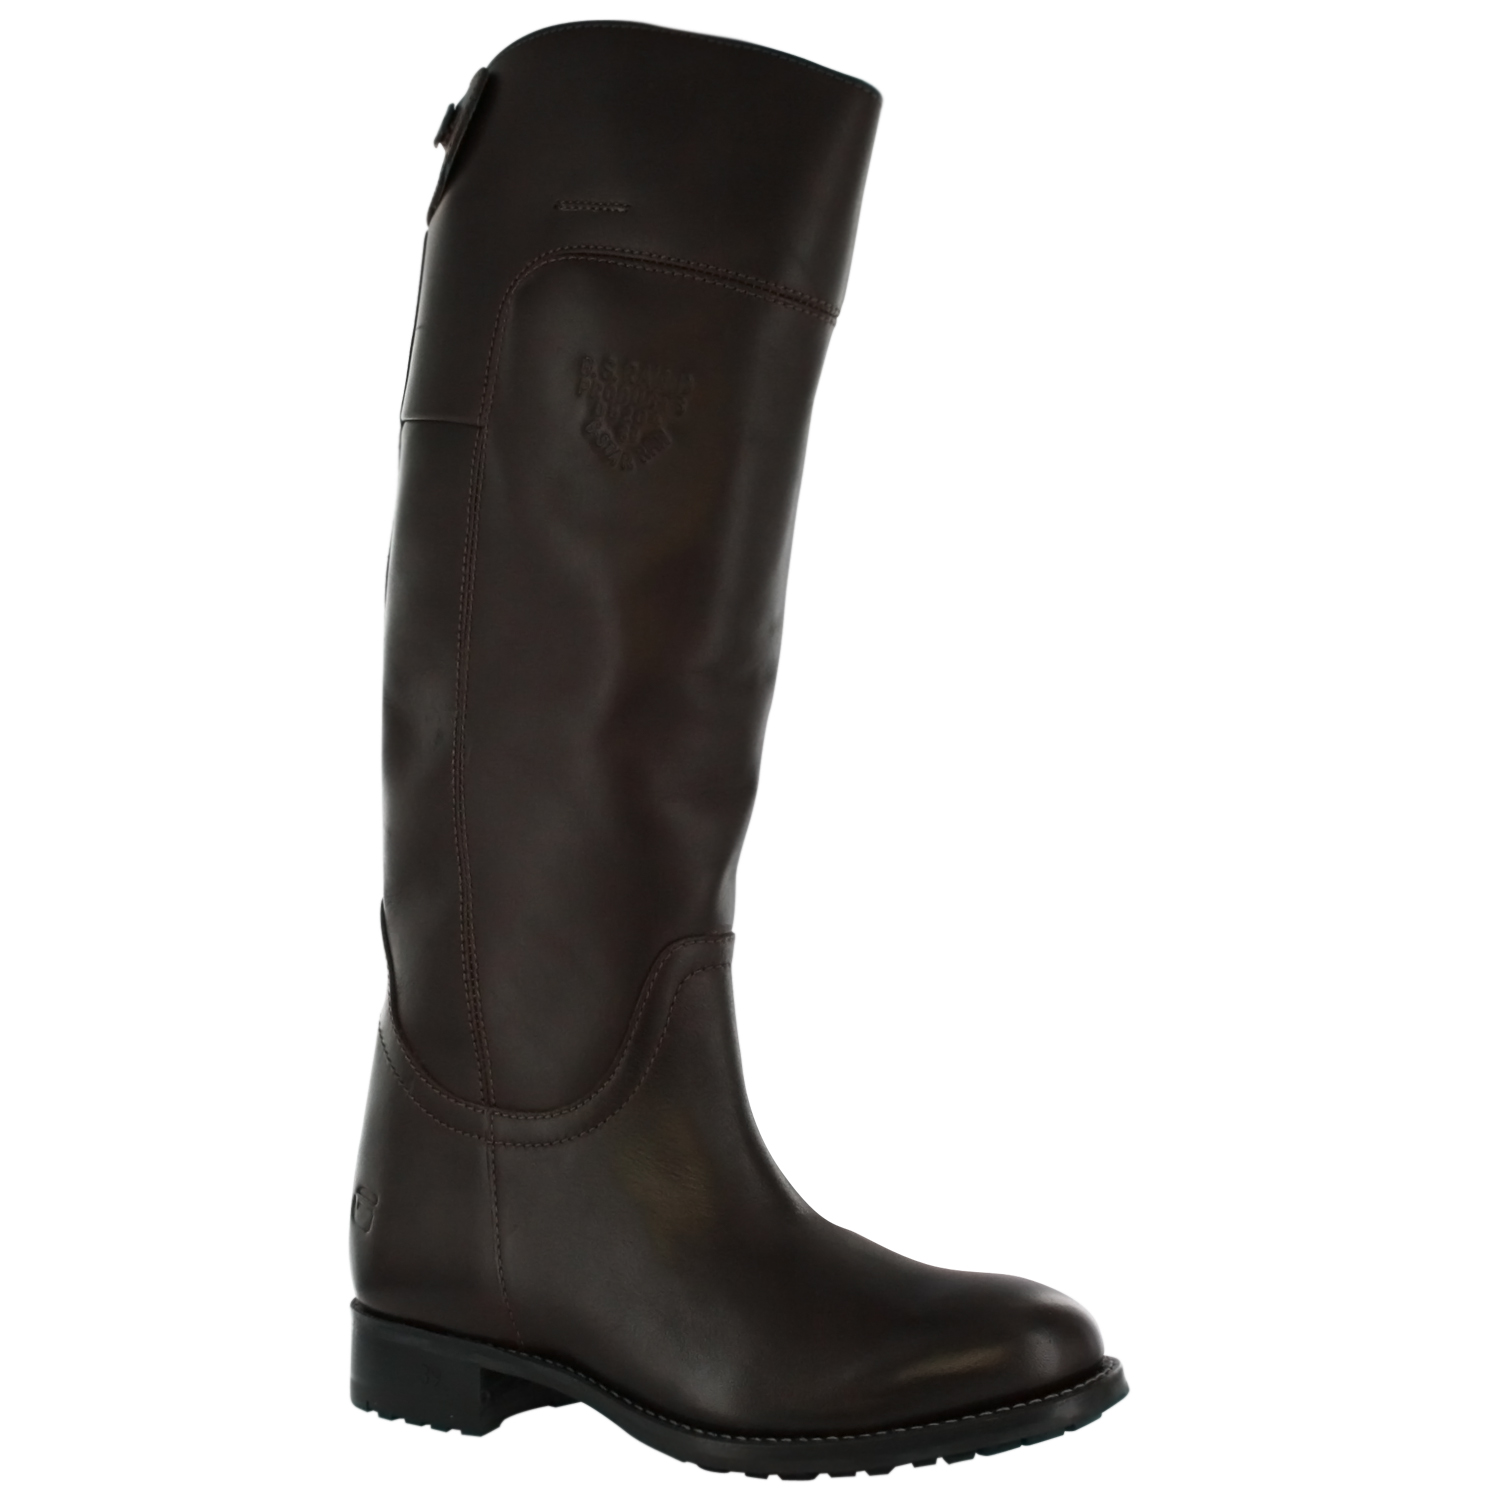 f7a24b953 G Star Petrarch Womens Long Leather Riding Boots Dark